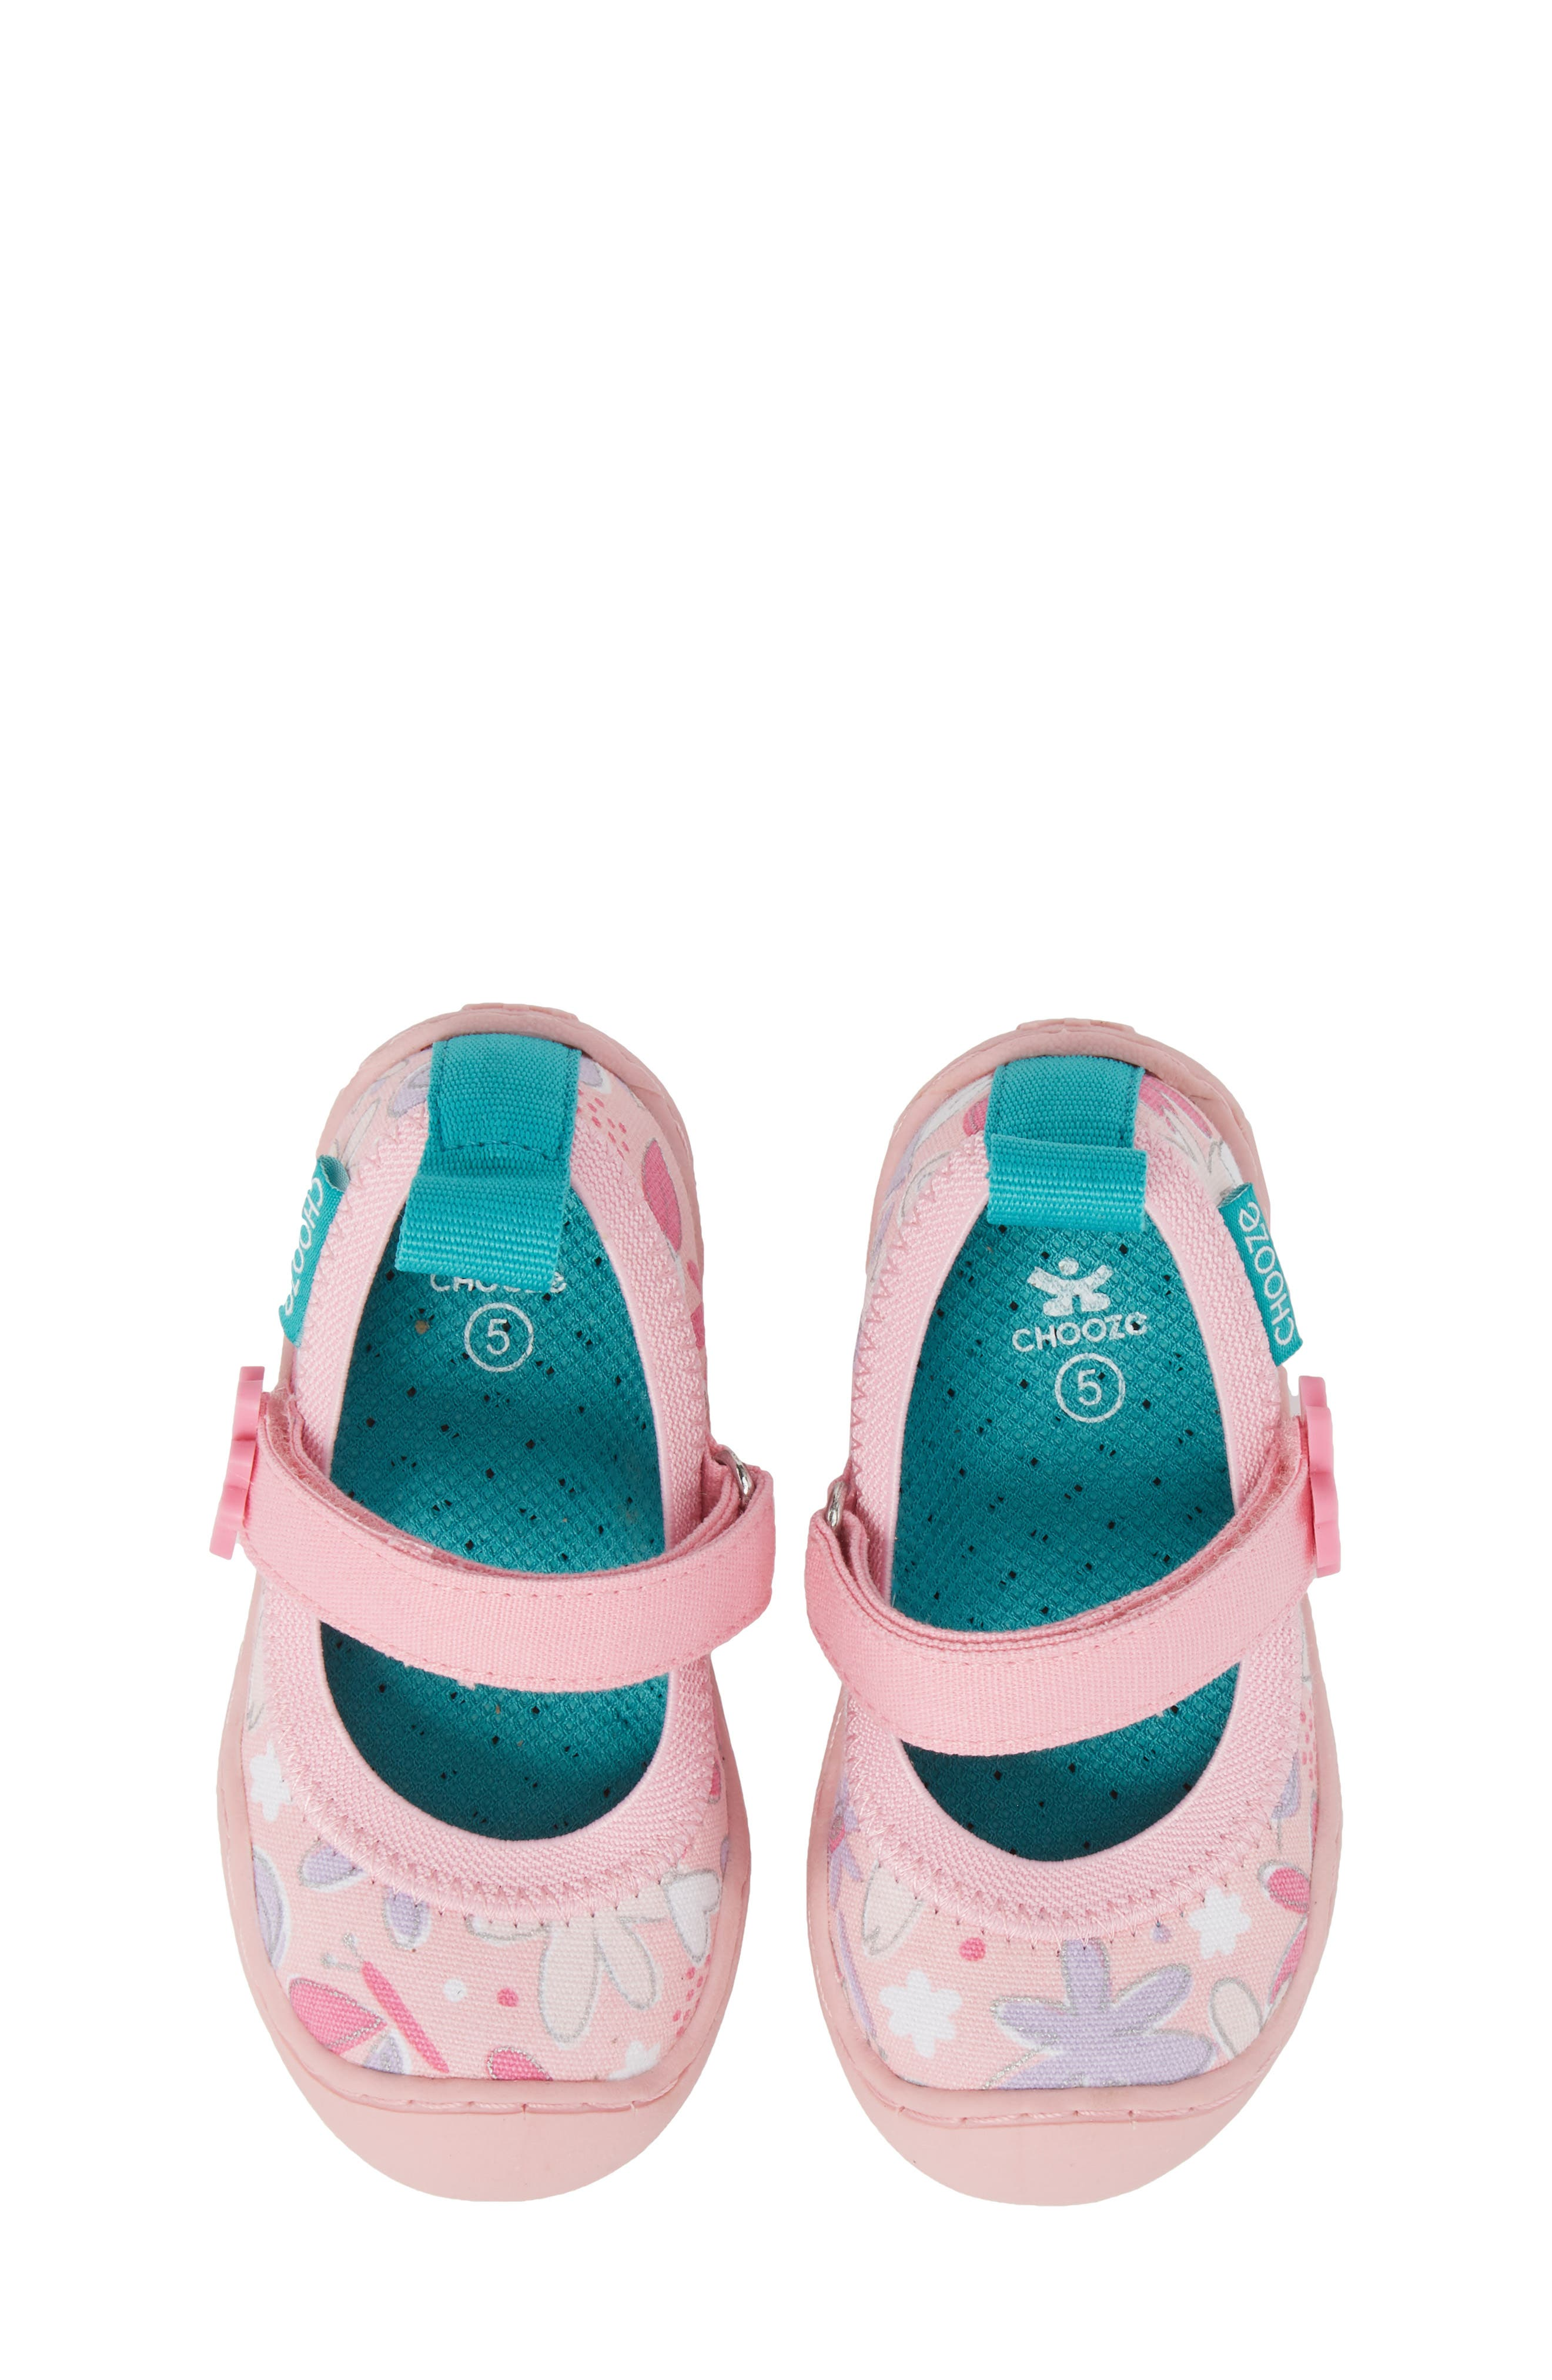 Steady Mary Jane Sneaker,                         Main,                         color, BOUQUET